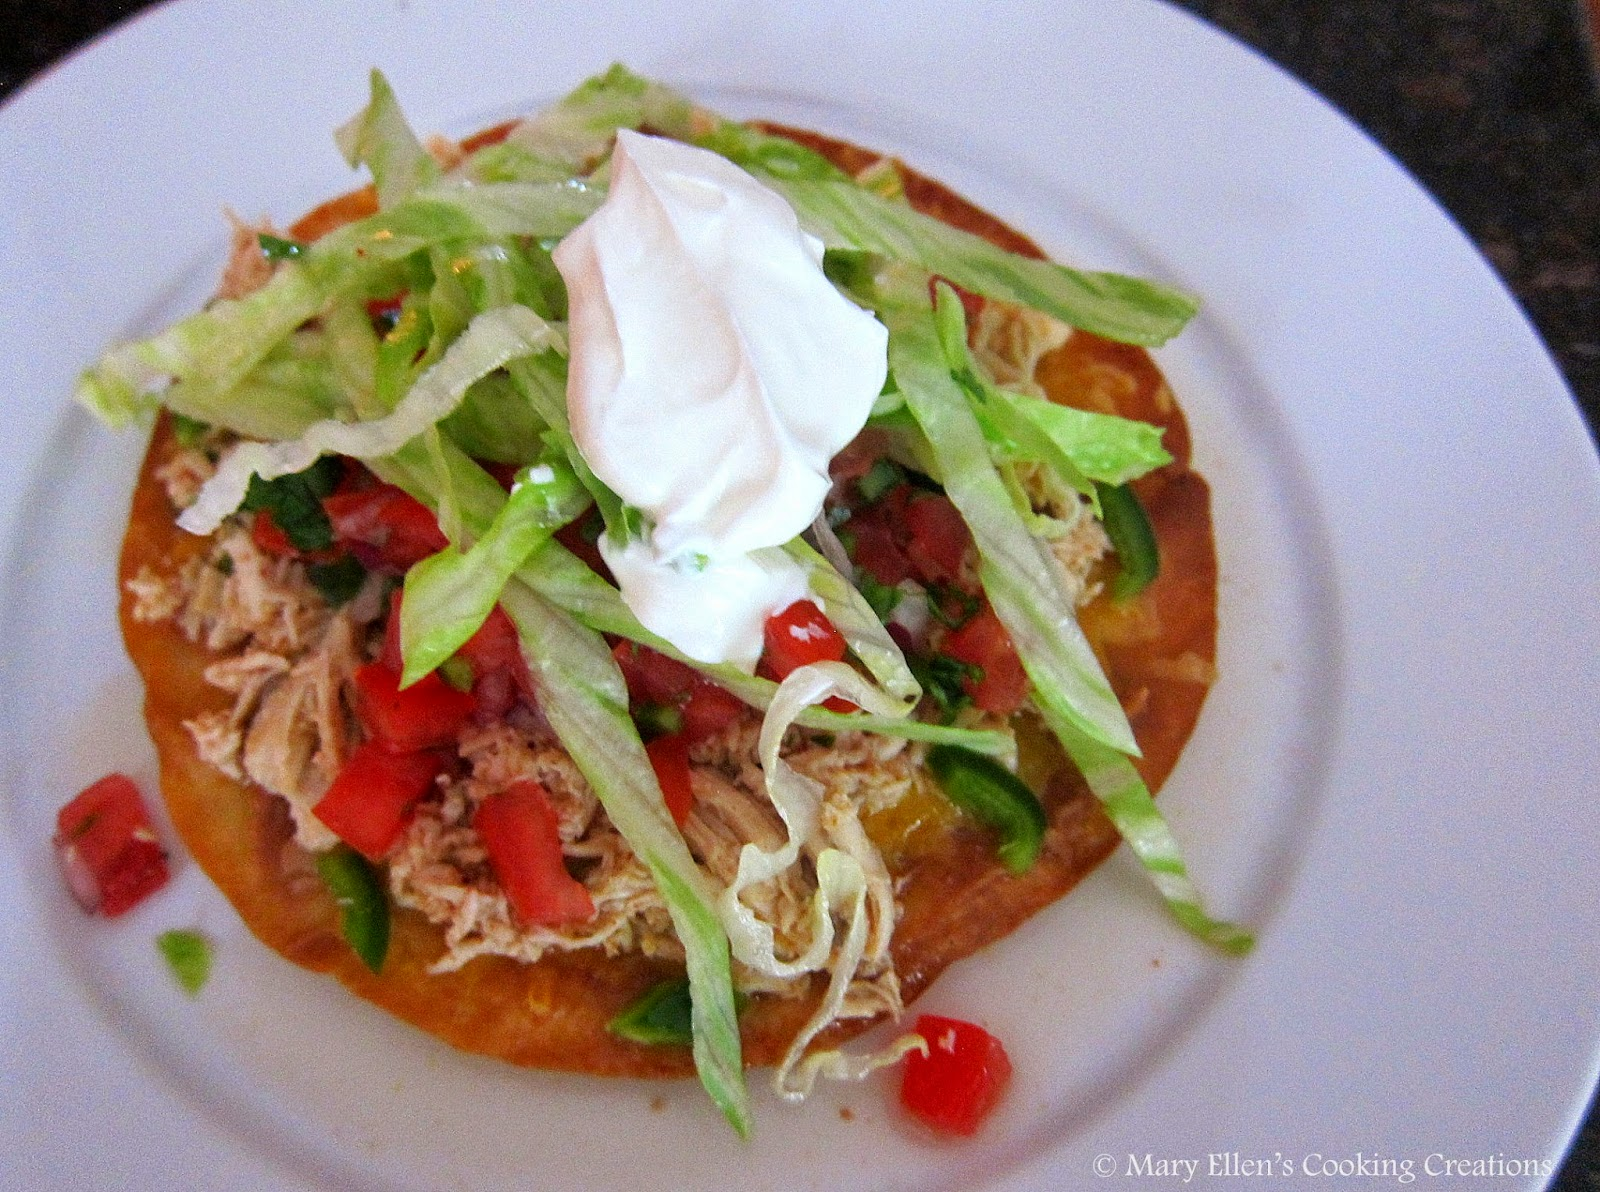 Mary Ellen's Cooking Creations: Chicken Tostadas